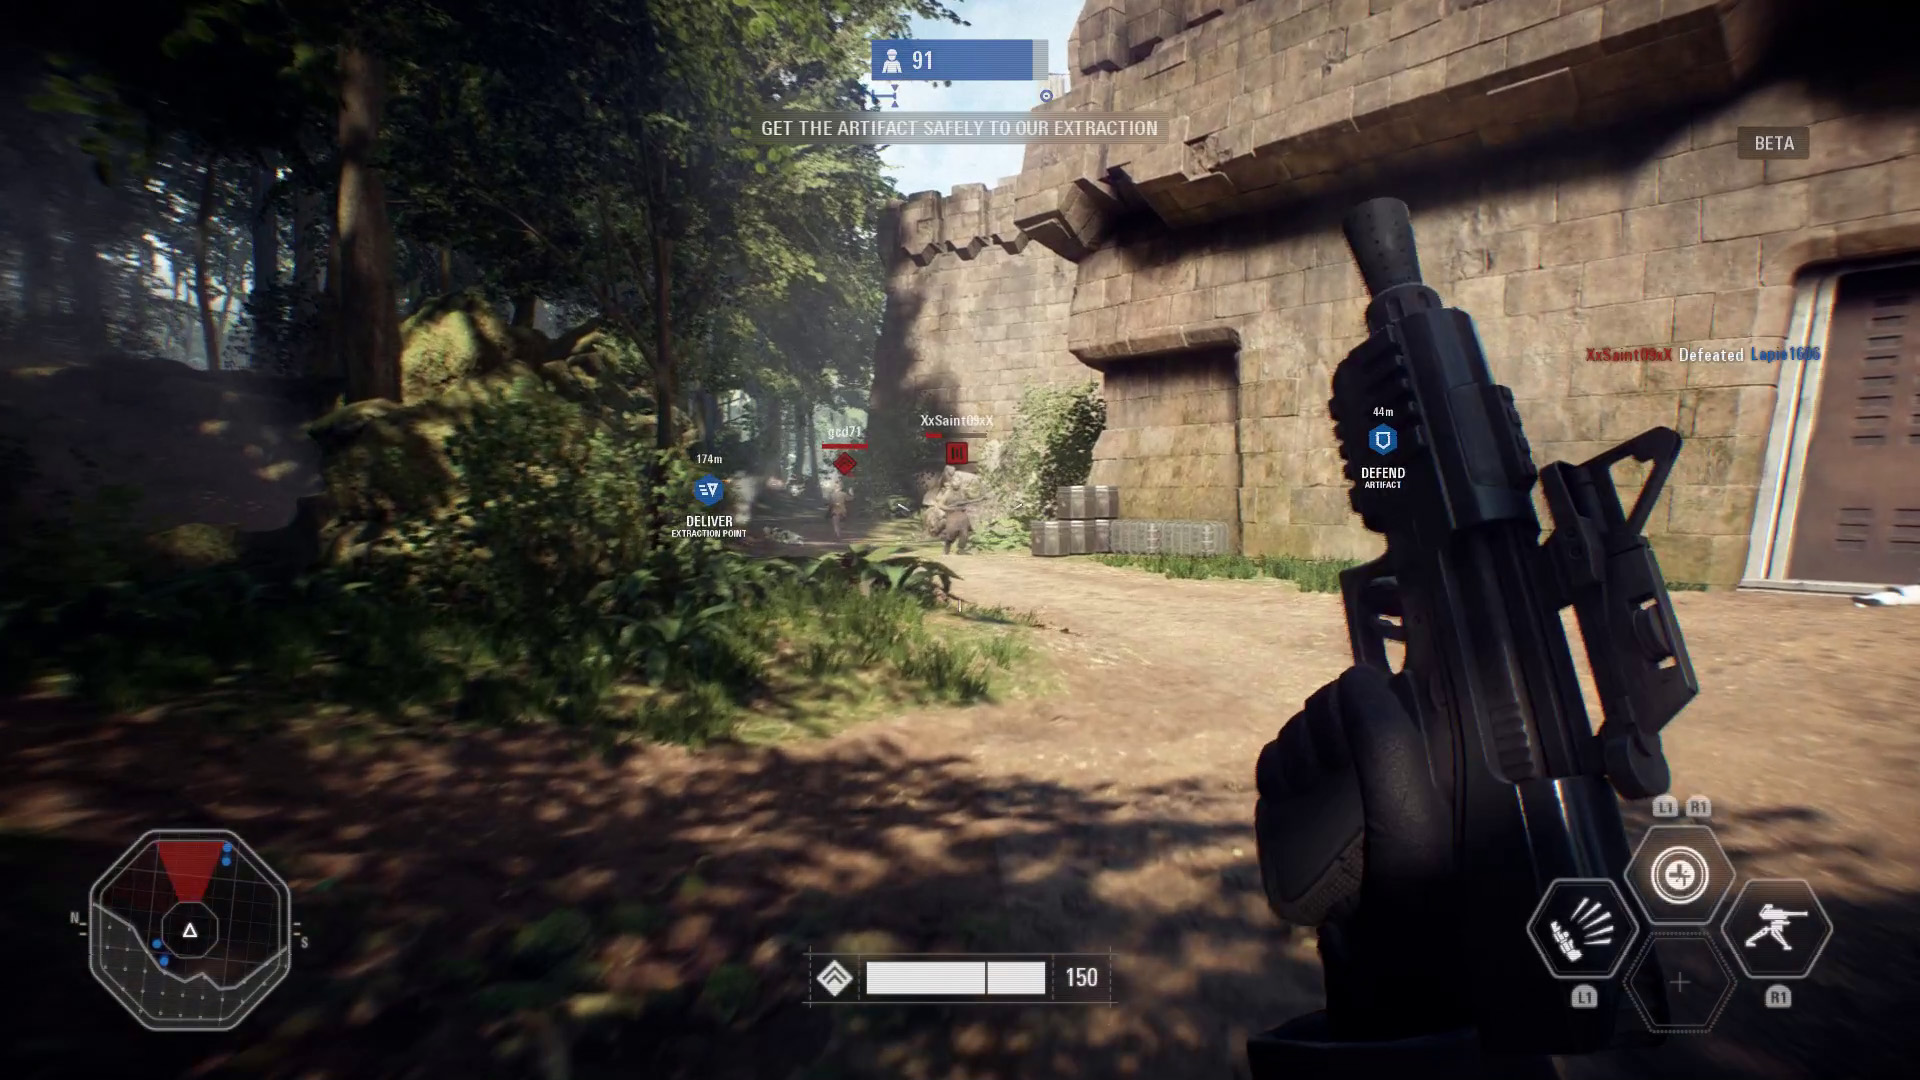 The Beta Offers A Slice Of Full Games Content With Three Multiplayer Modes Spread Across Maps Galactic Assault 20v20 Is